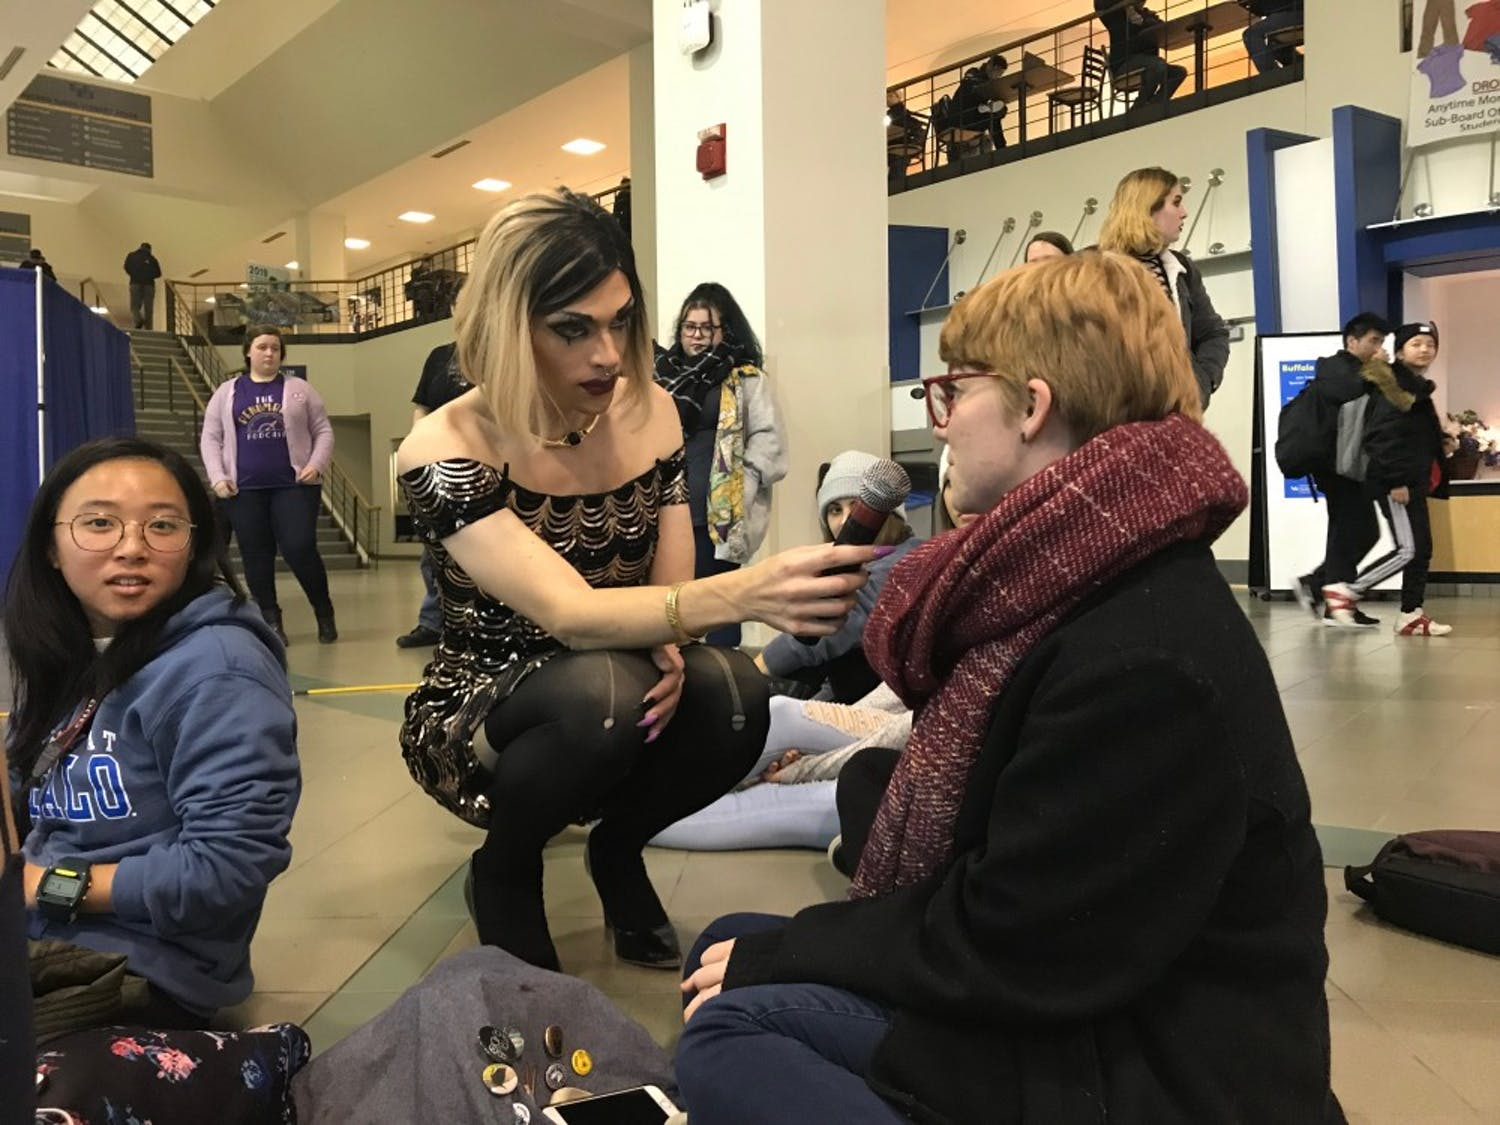 Drag queen Alice Raige answered questions from the community during the Q&A portion of the drag show on Friday.